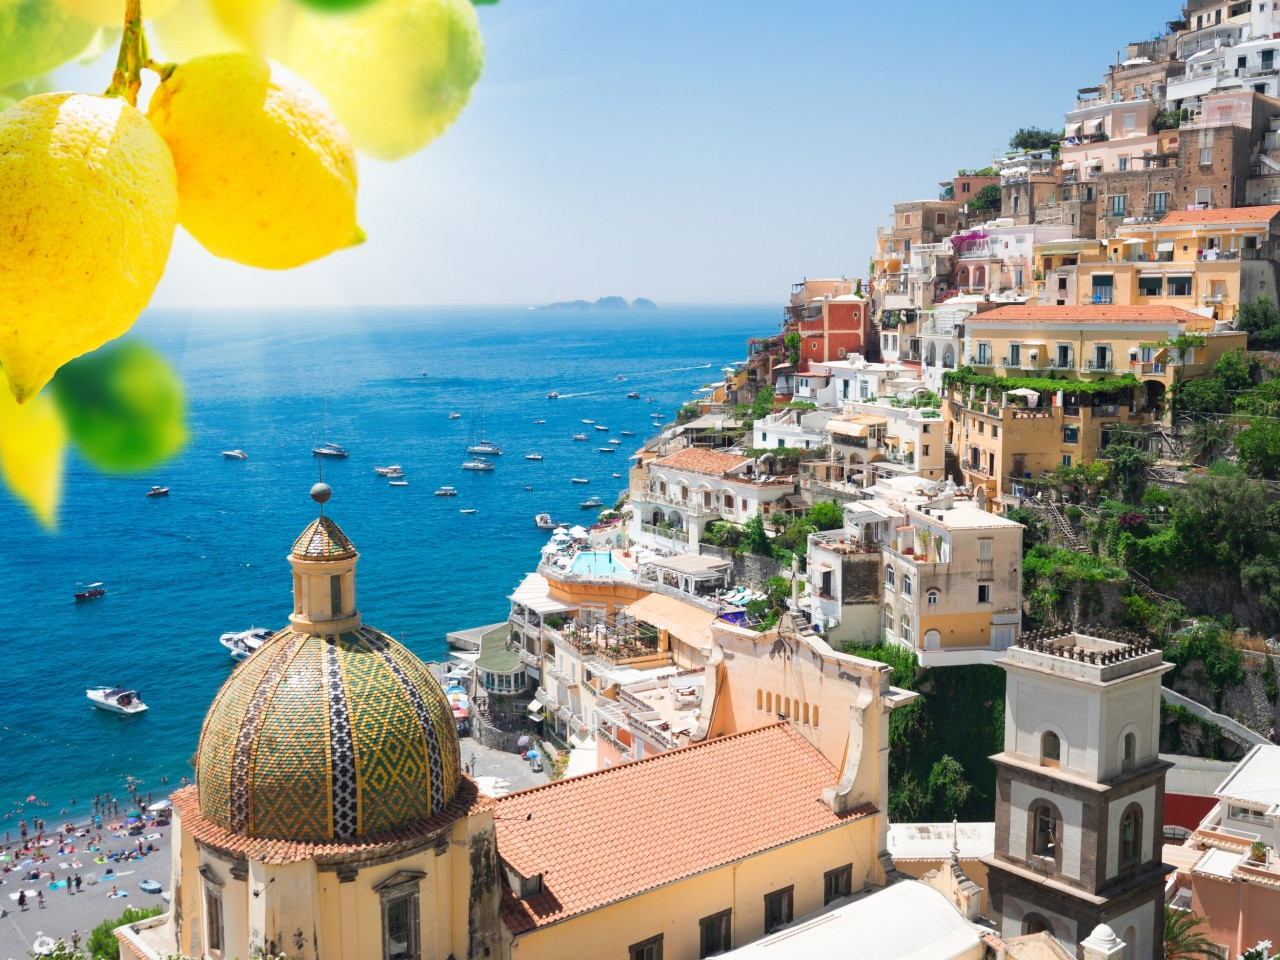 Tour di Positano con Limoncello e ceramiche | Star cars private tours